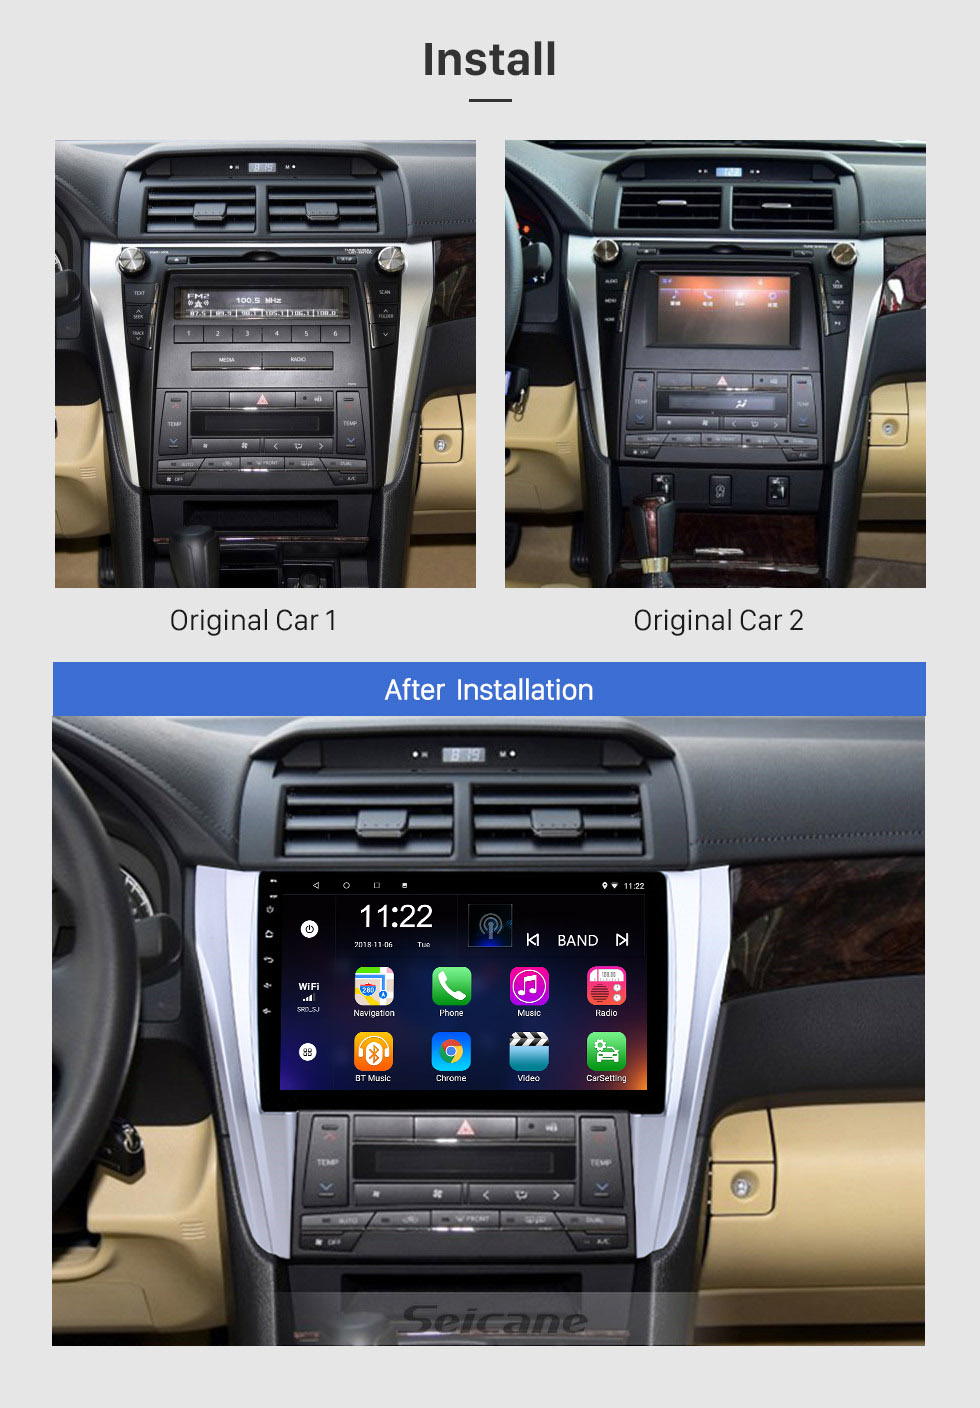 Seicane 10.1 inch Android 8.1 GPS Navigation System Radio For 2015 2016 2017 Toyota Camry Steering Wheel Control Bluetooth HD Touch Screen TV tuner Rear view